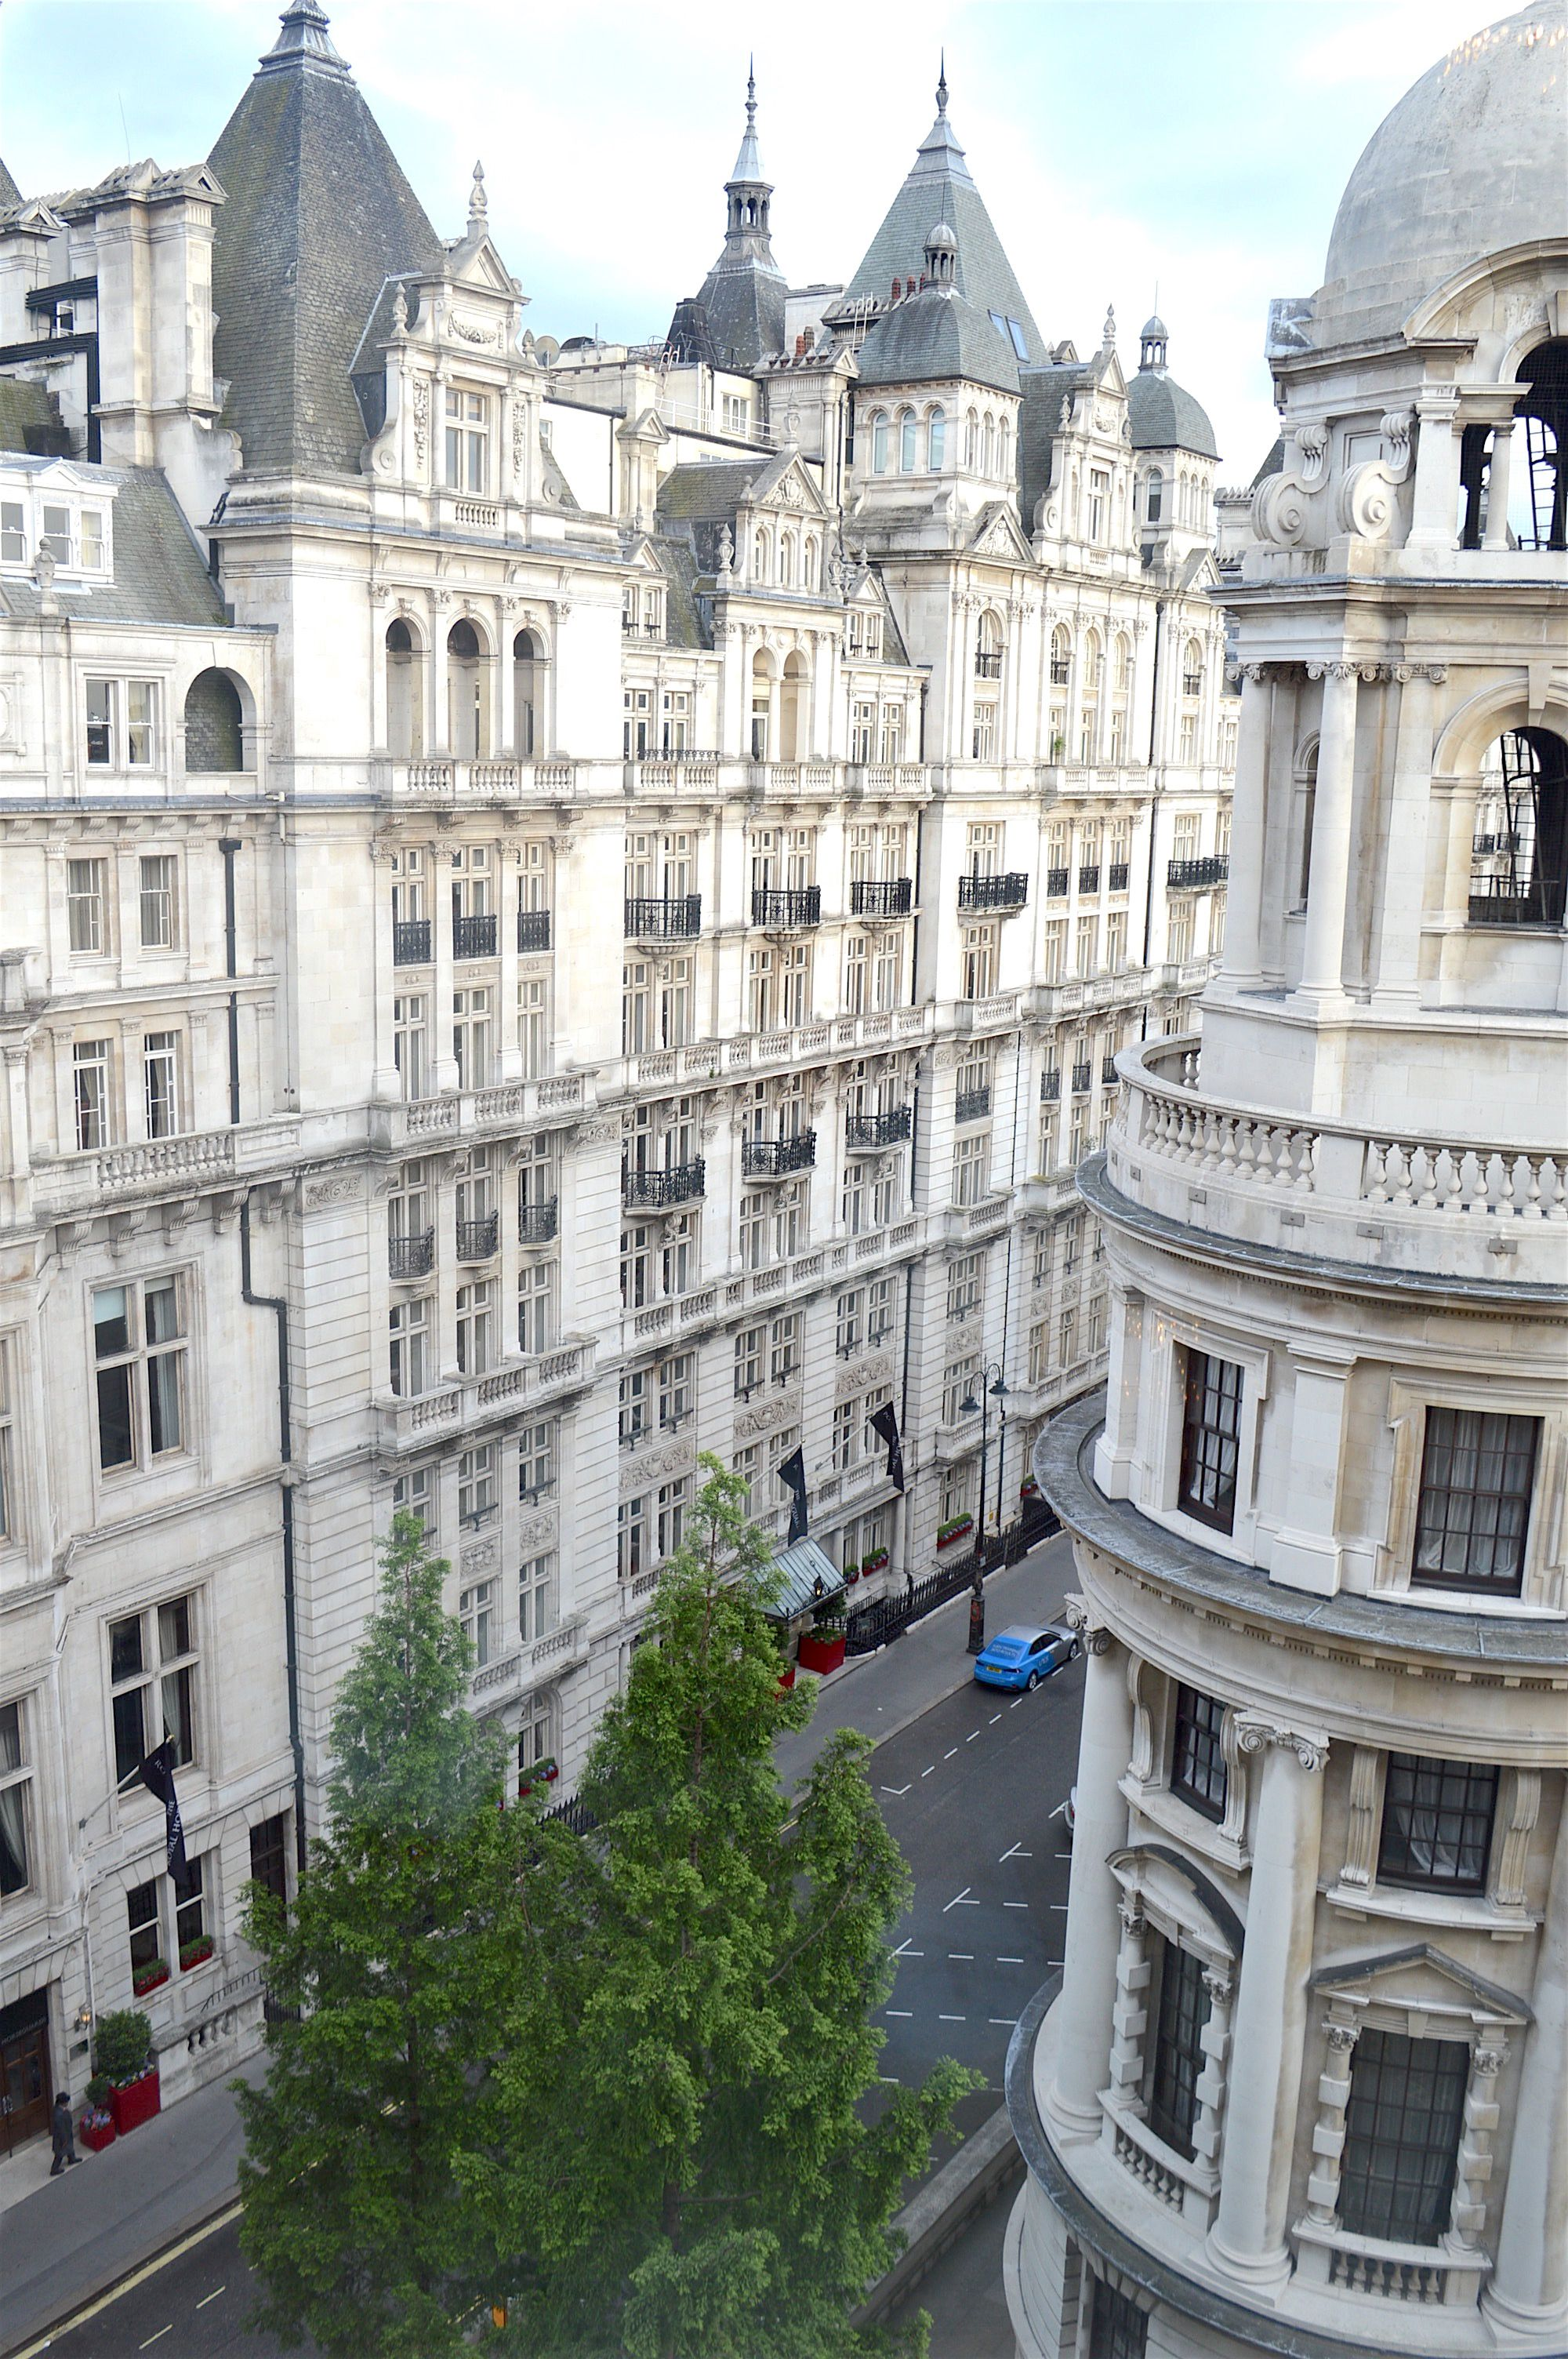 35 reasons london is prettier than paris spa architecture and